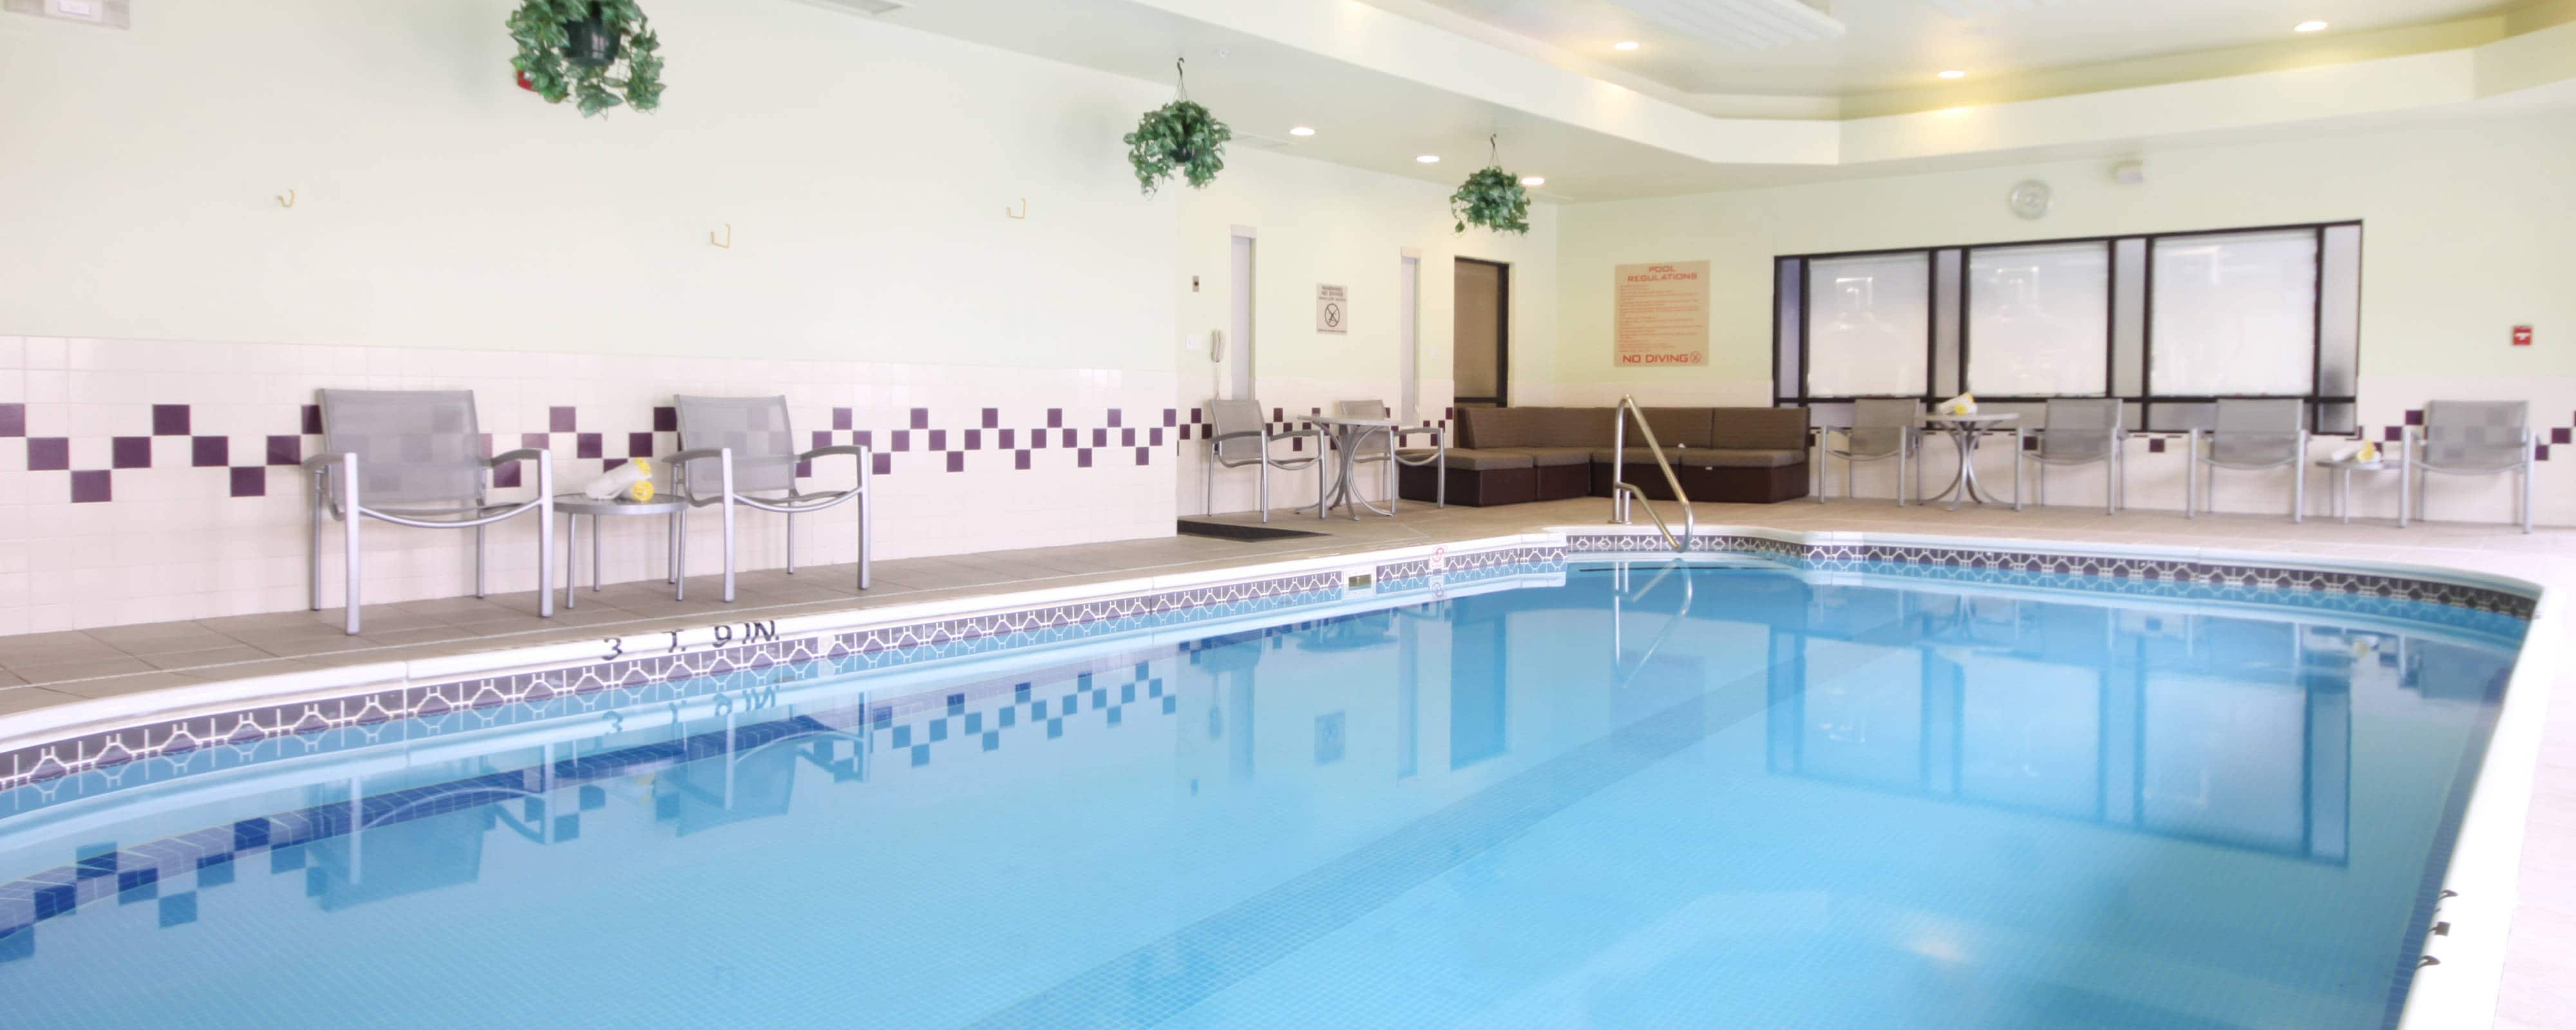 Tulsa OK hotel indoor pool